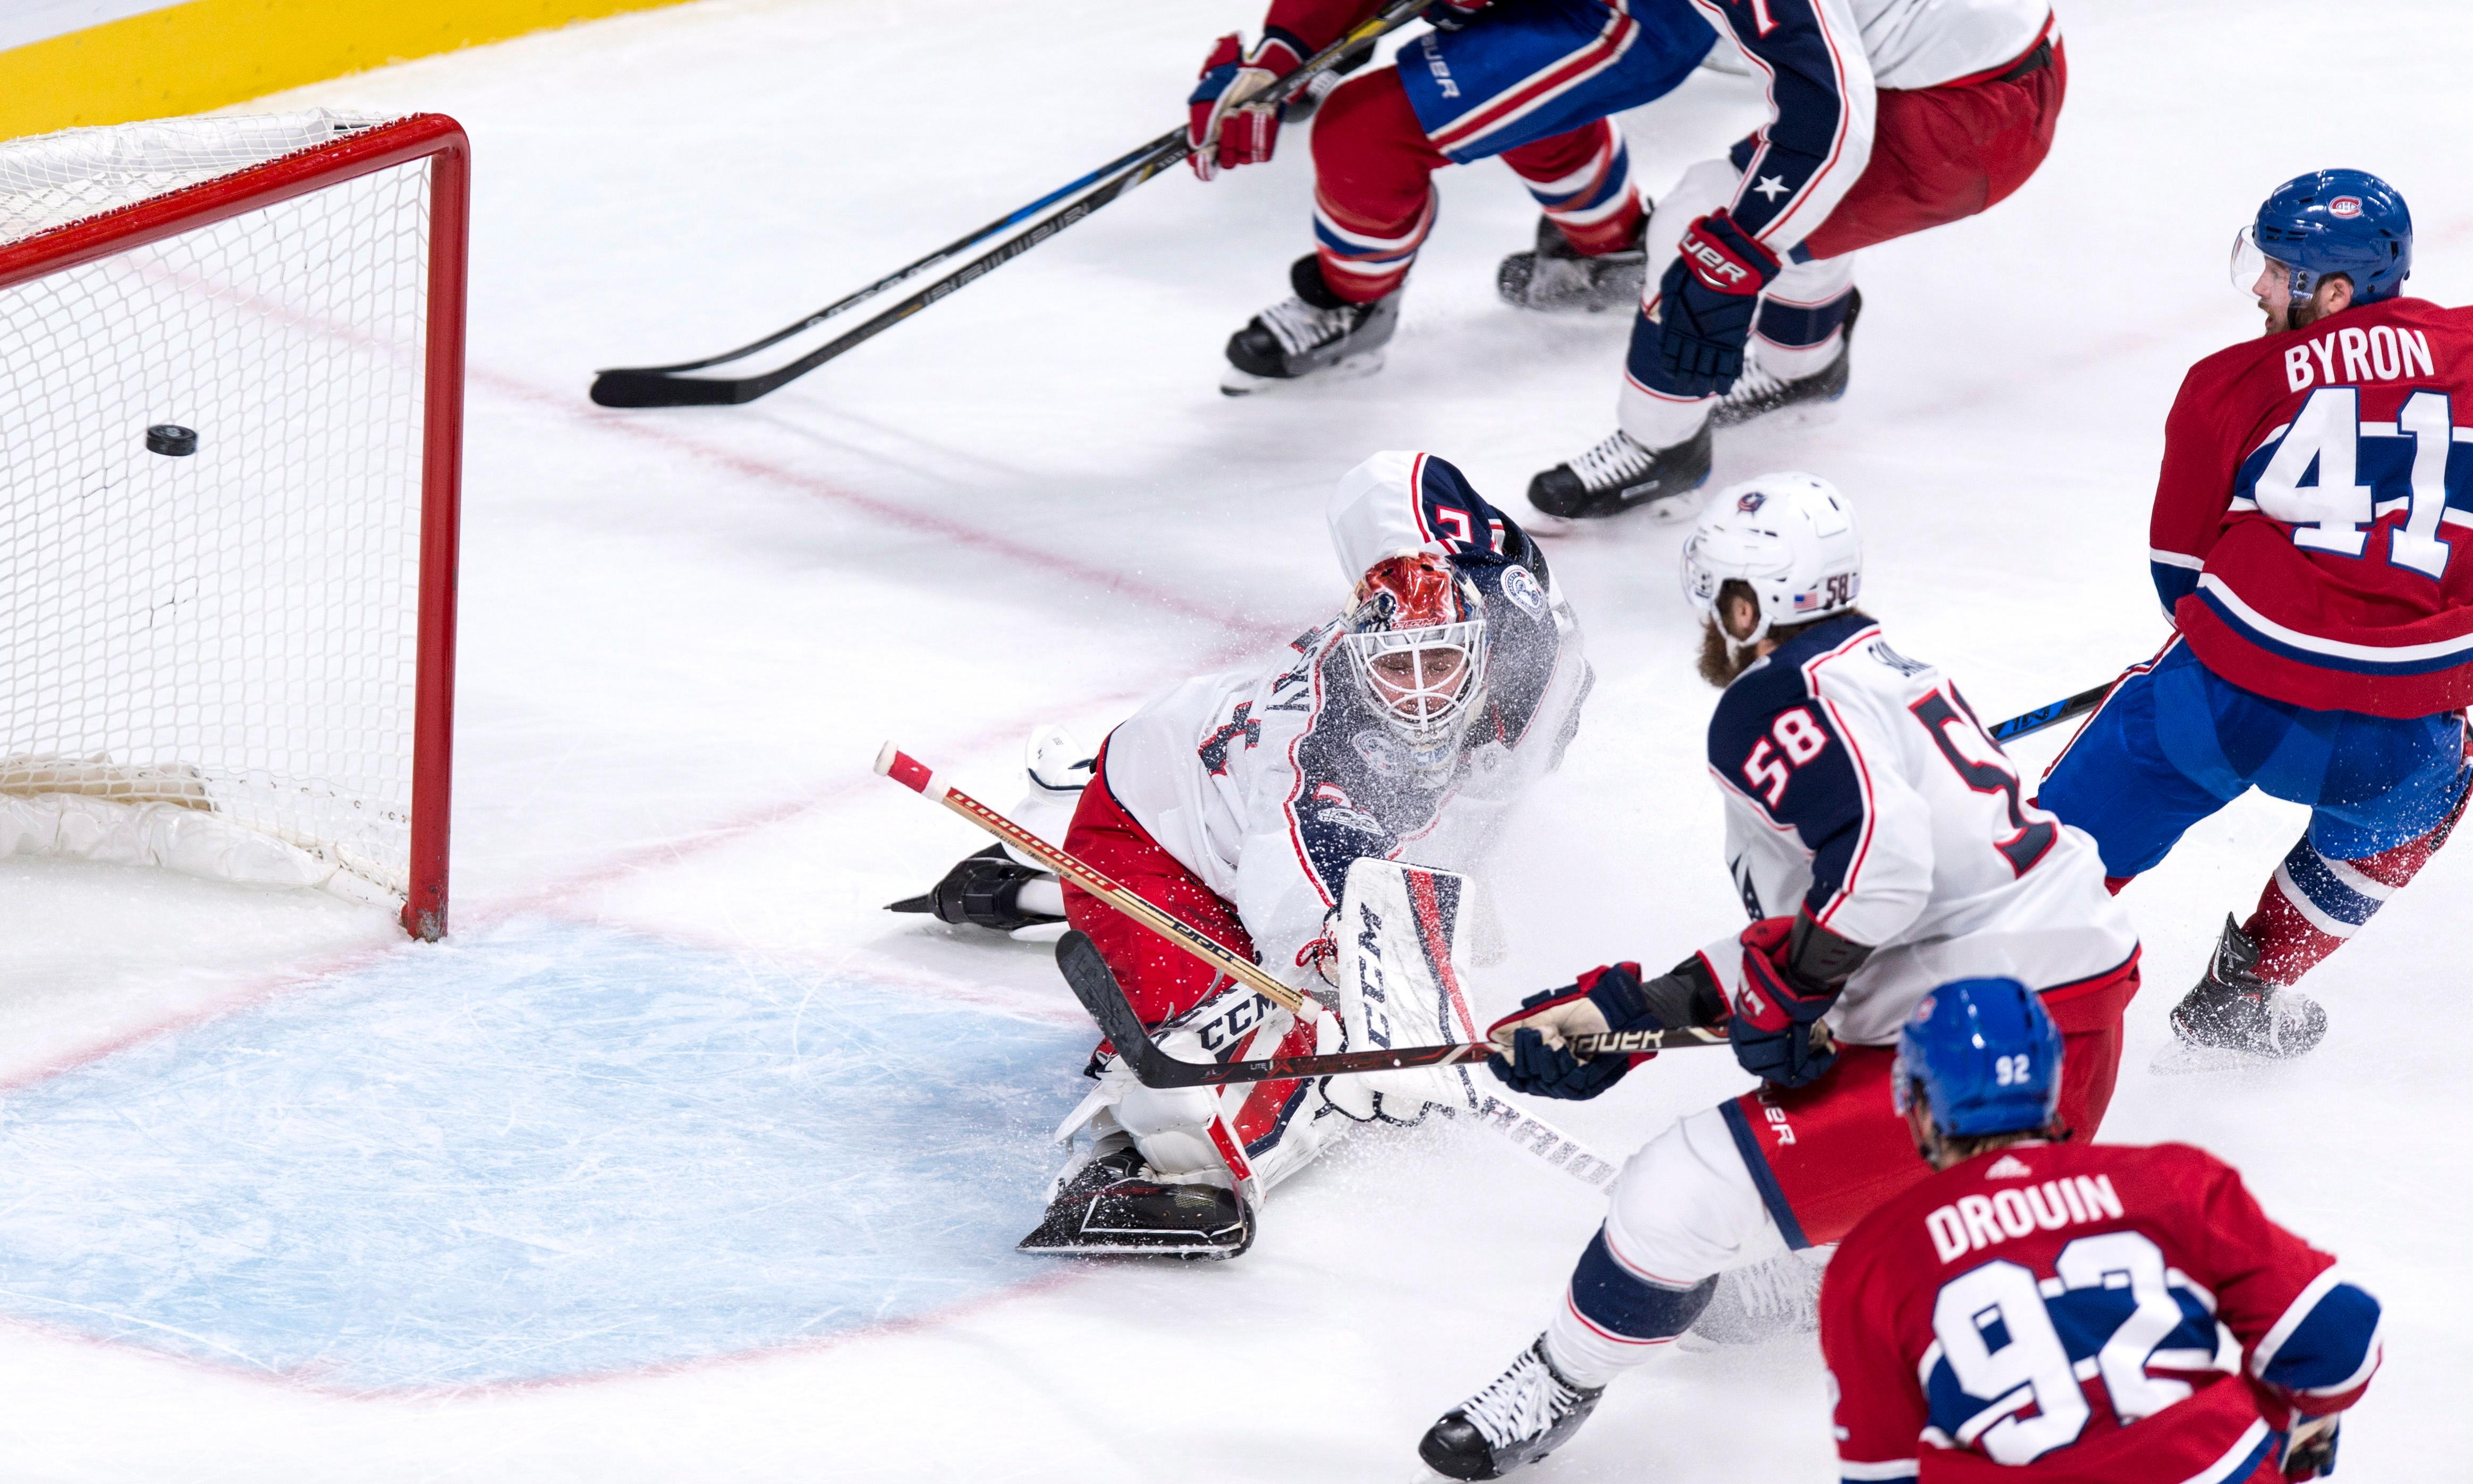 Montreal Canadiens' Paul Byron, upper right, scores past Columbus Blue Jackets goalie Sergei Bobrovsky during the third period of an NHL hockey game Tuesday, Nov. 14, 2017, in Montreal. (Paul Chiasson/The Canadian Press via AP)